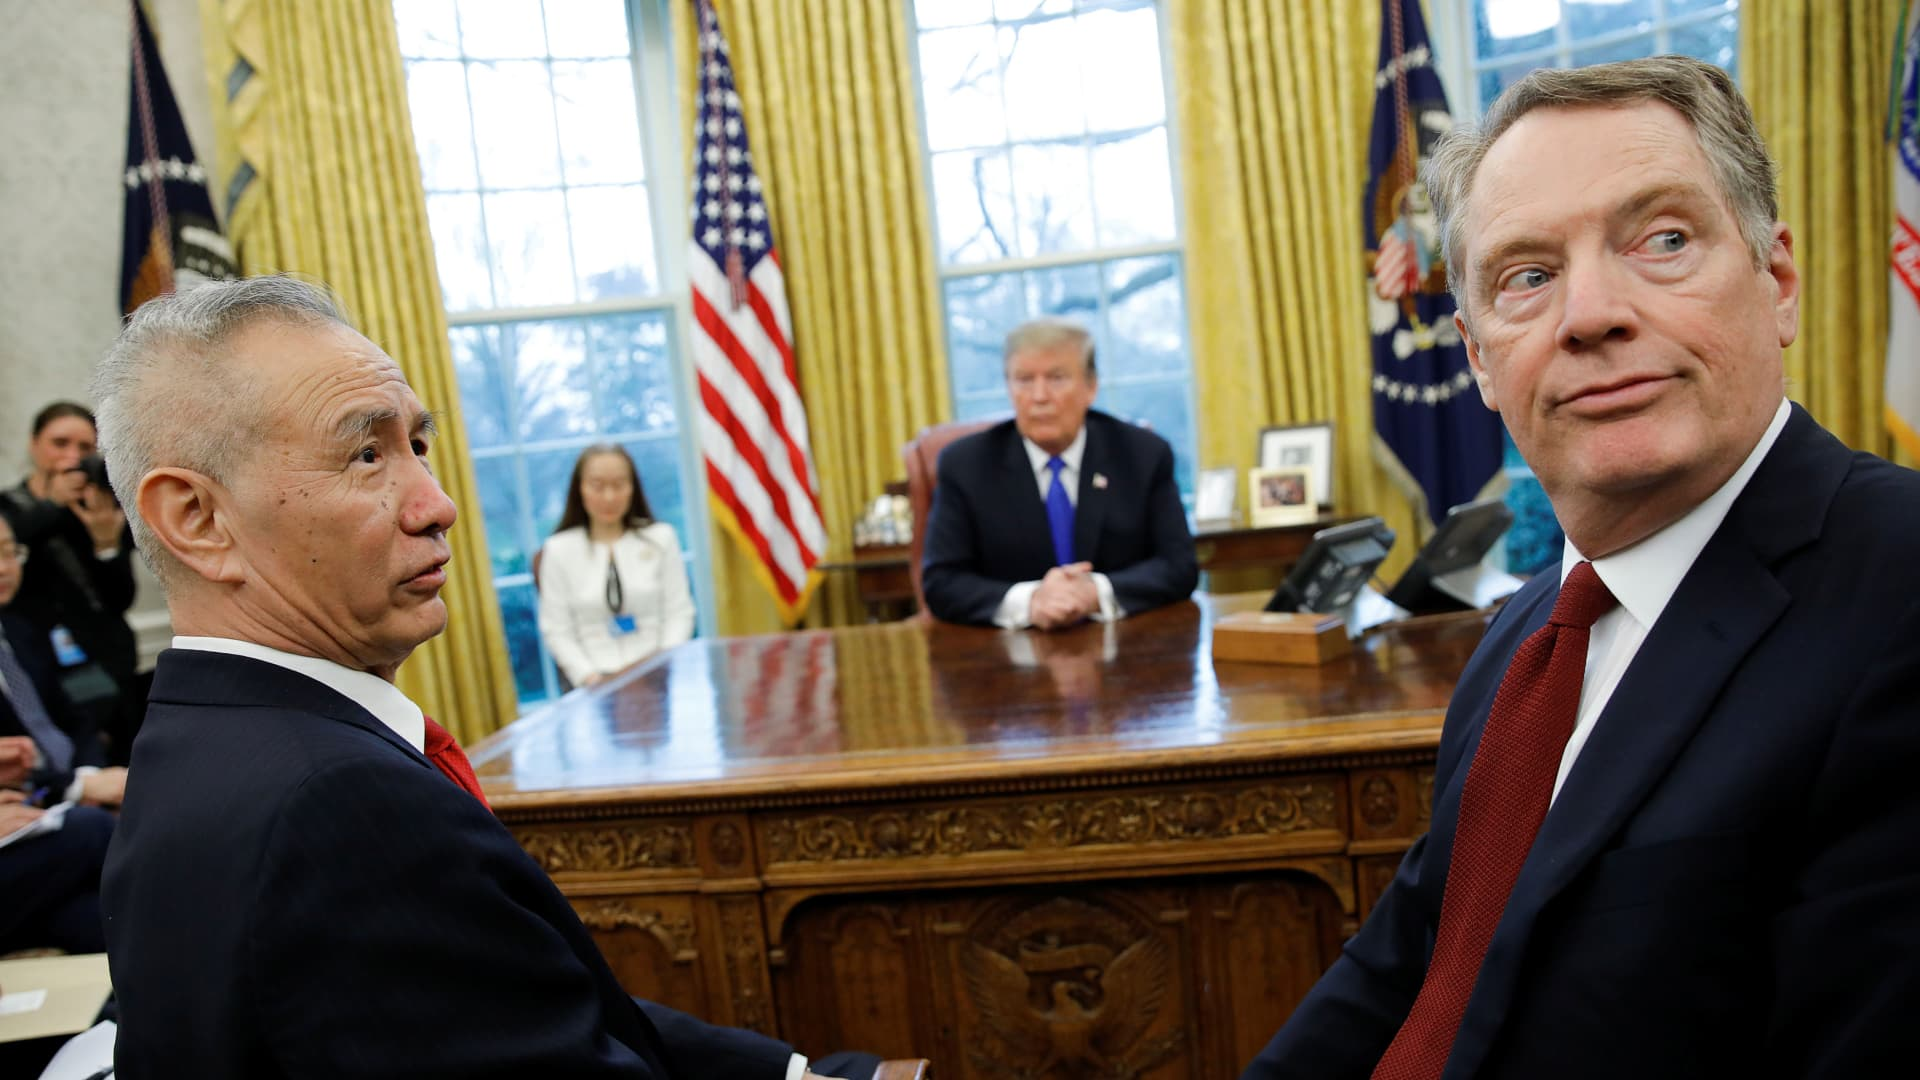 China's Vice Premier Liu He turns with U.S. Trade Representative Robert Lighthizer during a meeting with U.S. President Donald Trump in the Oval Office at the White House in Washington, February 22, 2019.